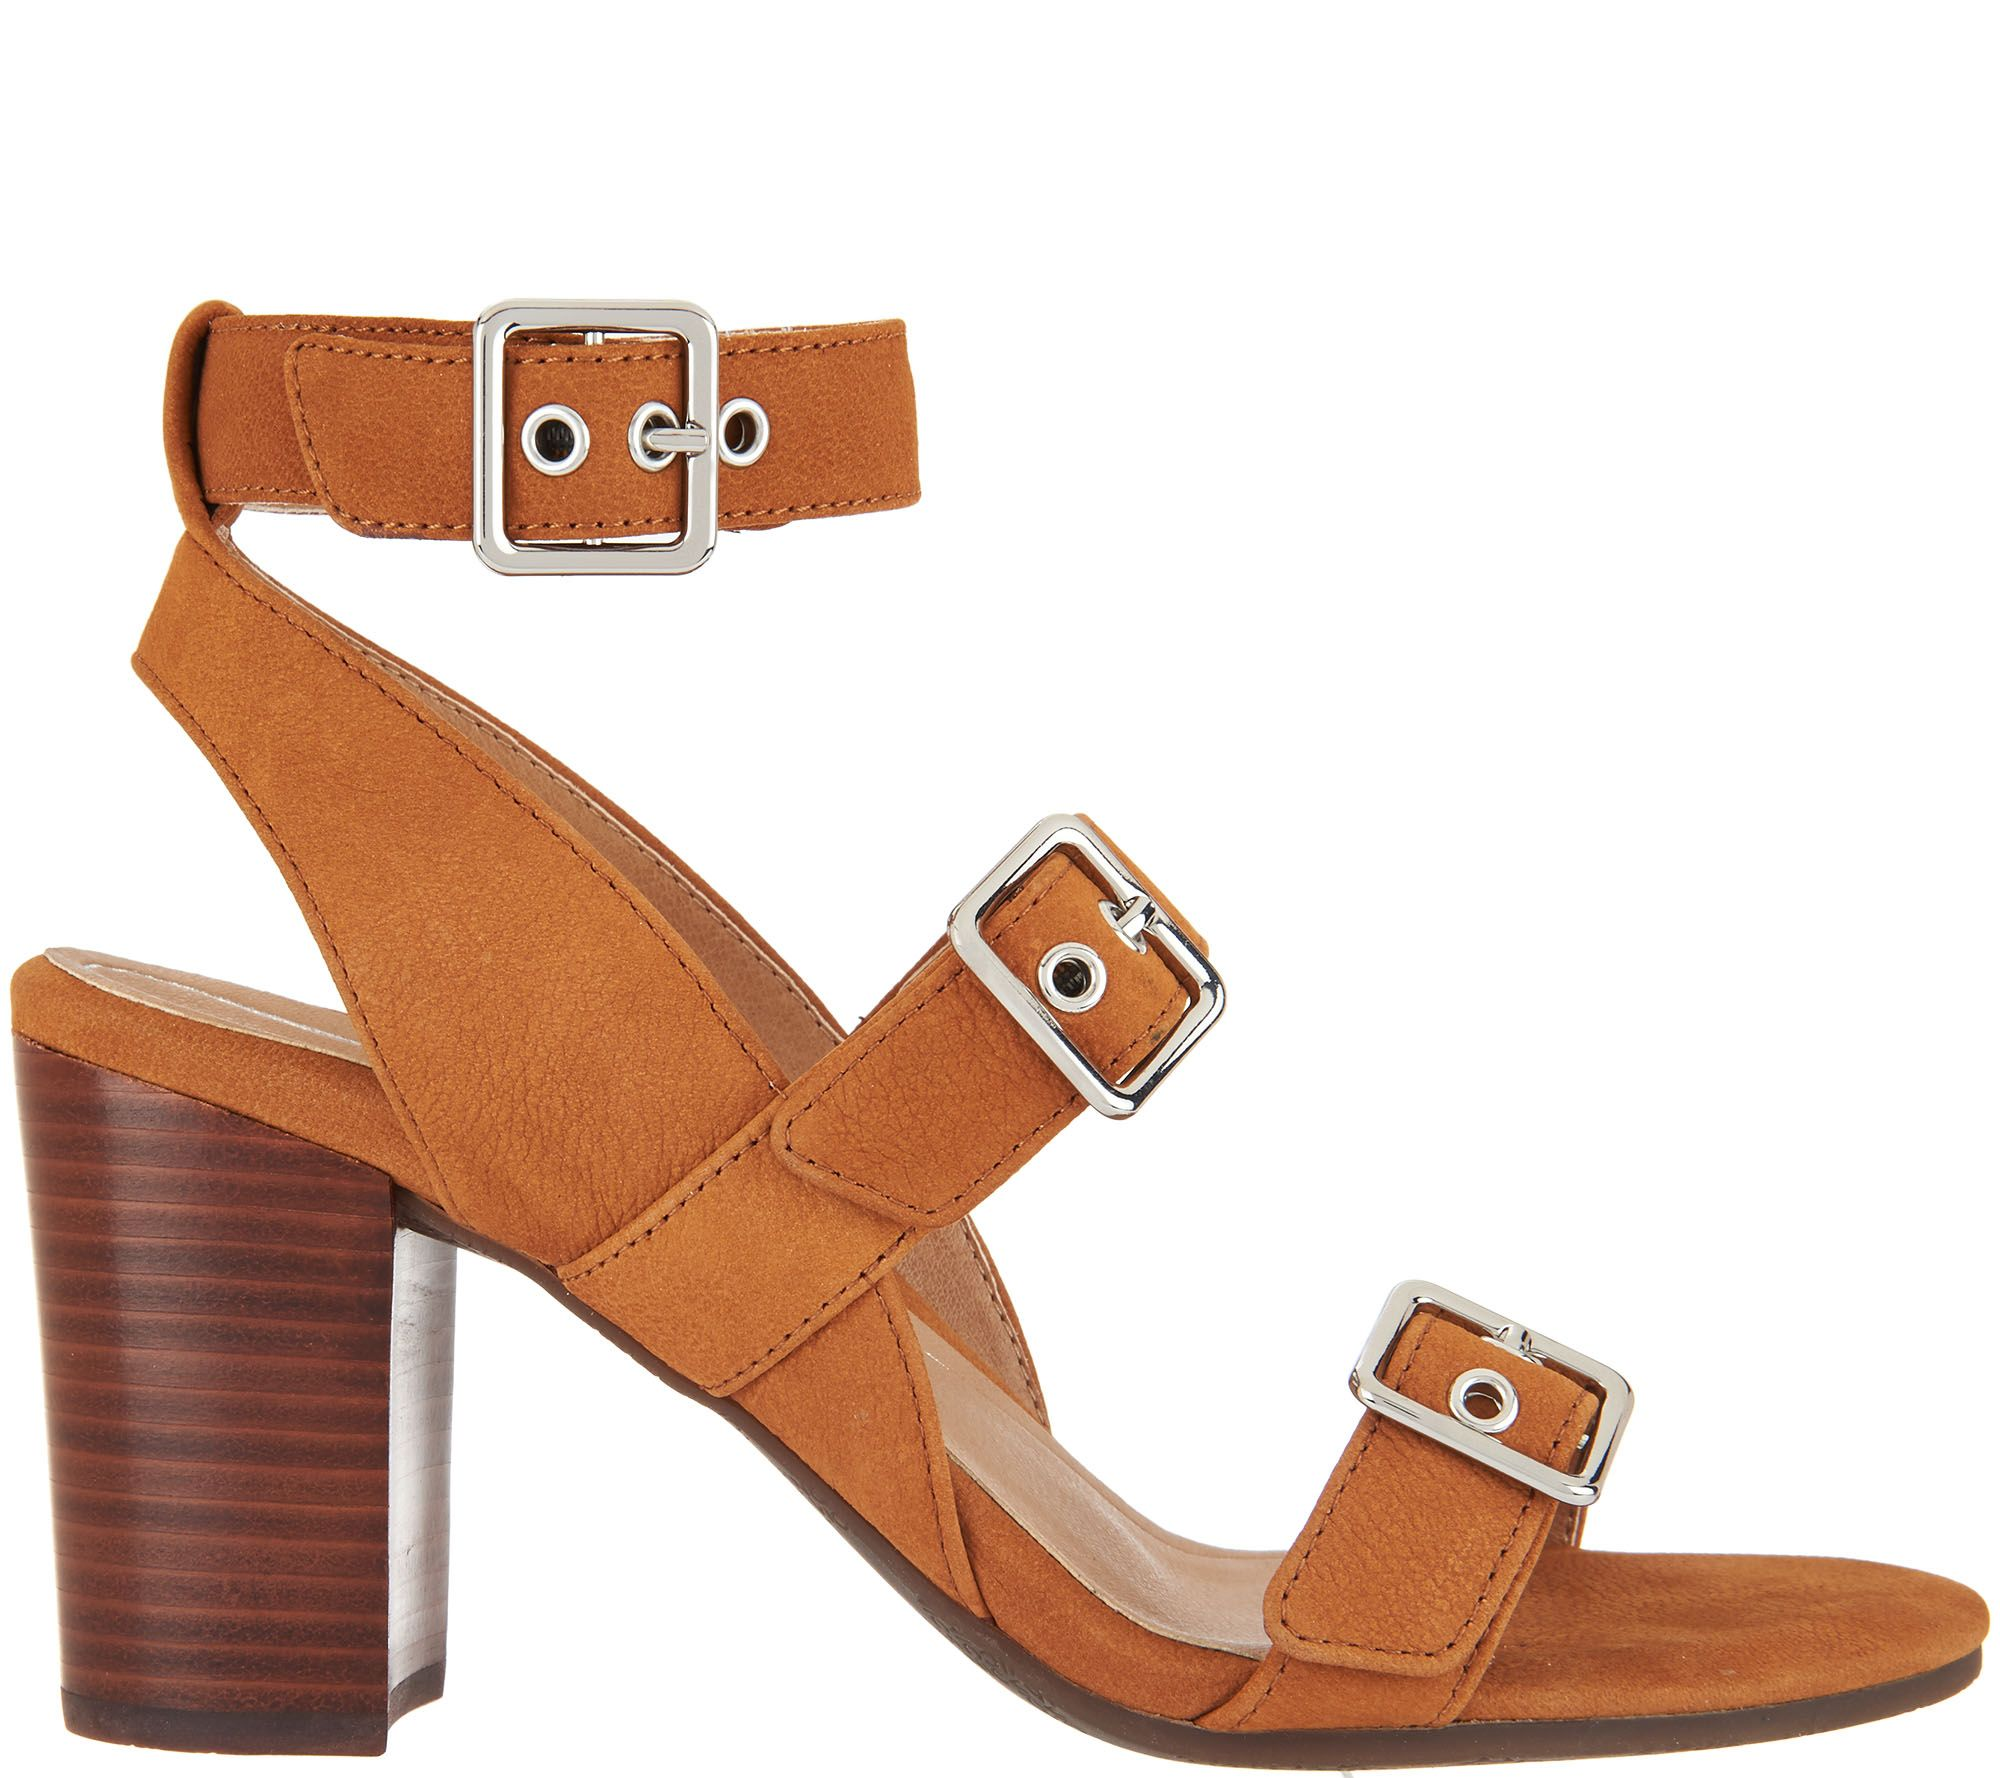 0be1c9bb7e9d Vionic Orthotic Block-Heel Leather Sandals - Carmel - Page 1 — QVC.com